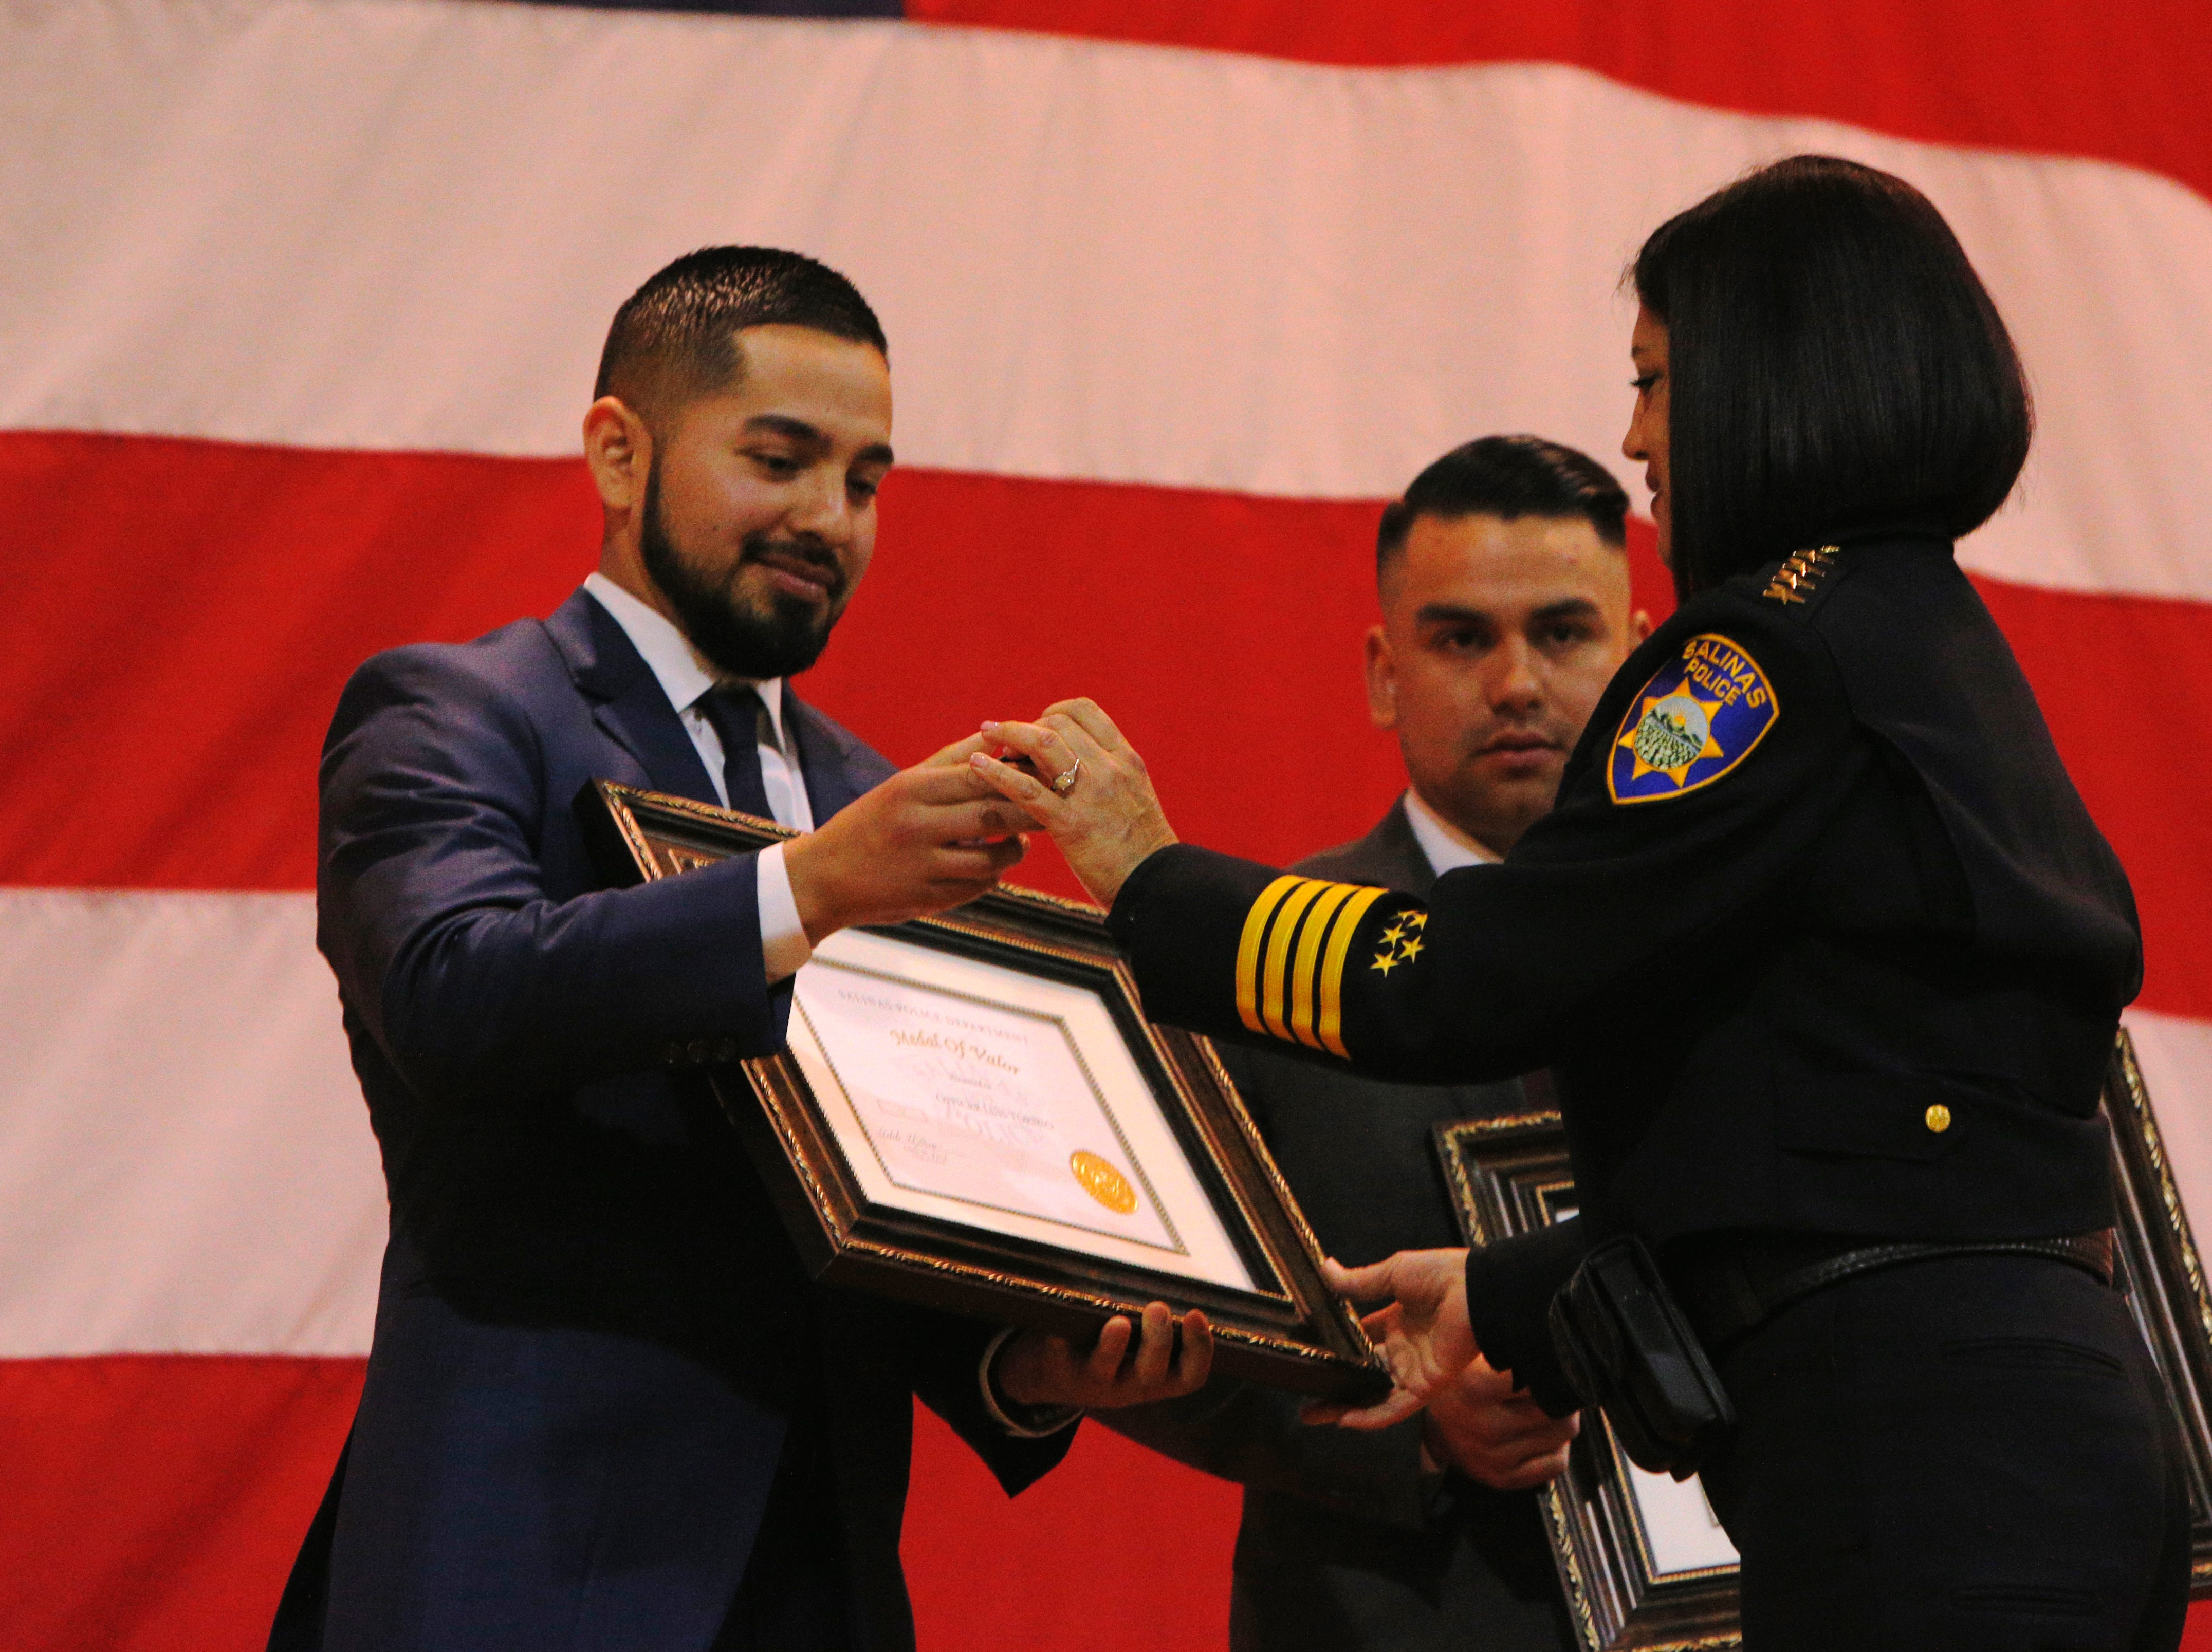 Salinas Police Chief Adele Fresé hands Officer Luis Toribio his commendation for earning the medal of valor March 14, 2019, at the Salinas Police Department's 2018 awards ceremony.